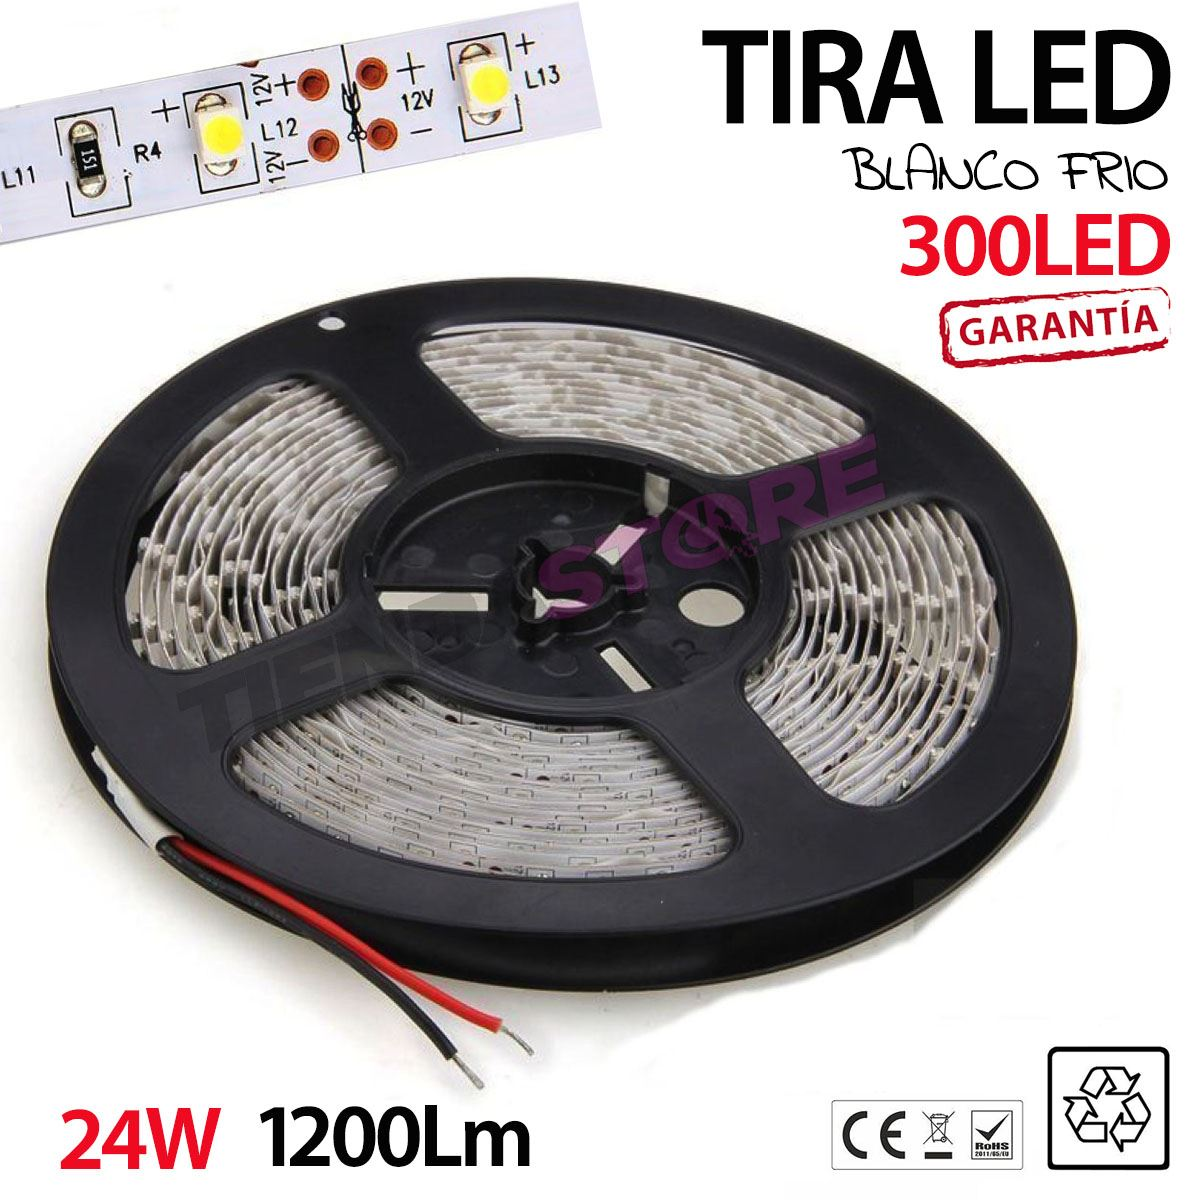 Tiras-de-luces-LED-5-metros-3528-BLANCO-ROLLO-LED-BLANCO-FRIO-CALIDO-300-LEDS